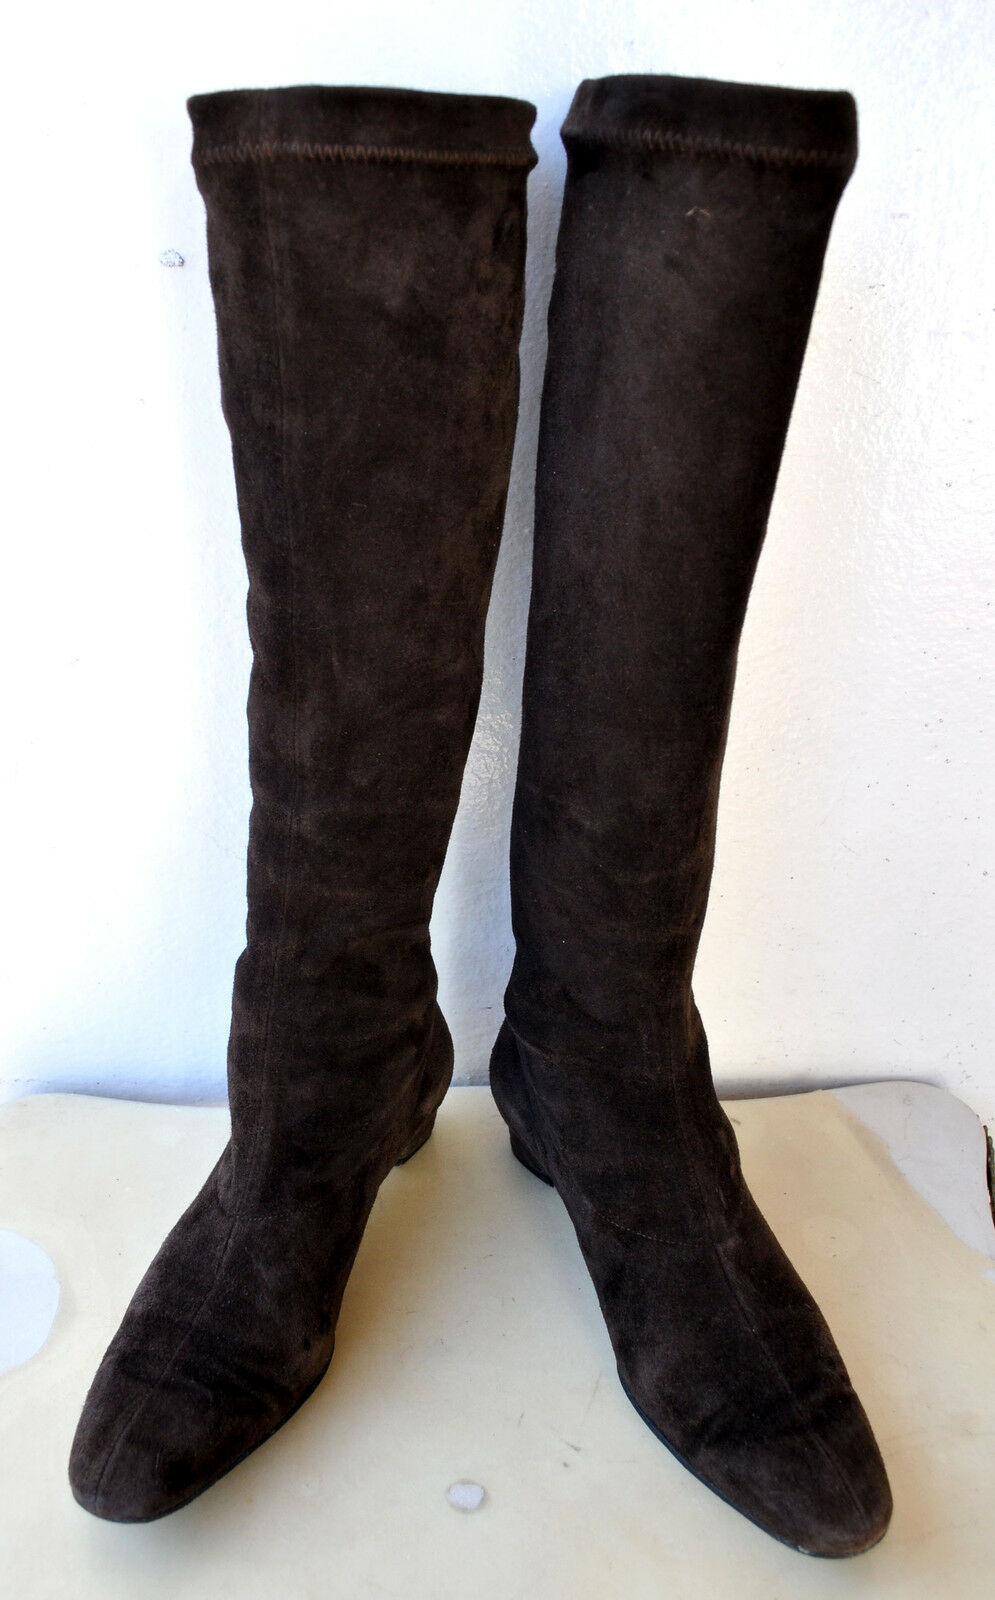 Robert Clergerie Knee High Stretch Suede Leather Boots Sz 6 Sold Out! RRP  1,050